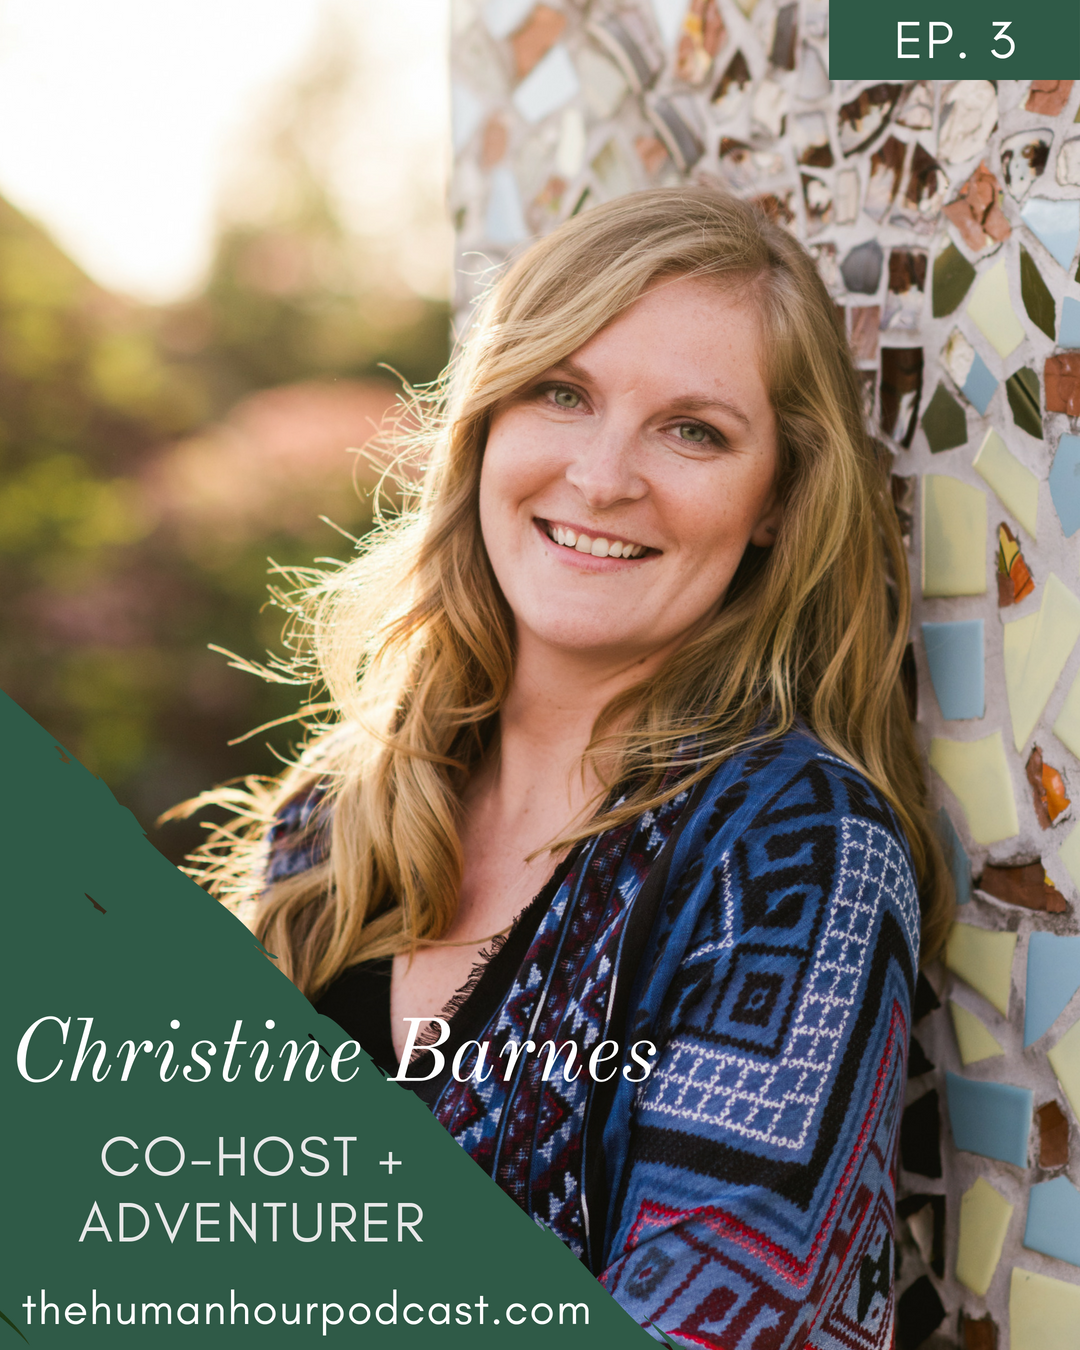 S1 E3: Meet Christine Barnes